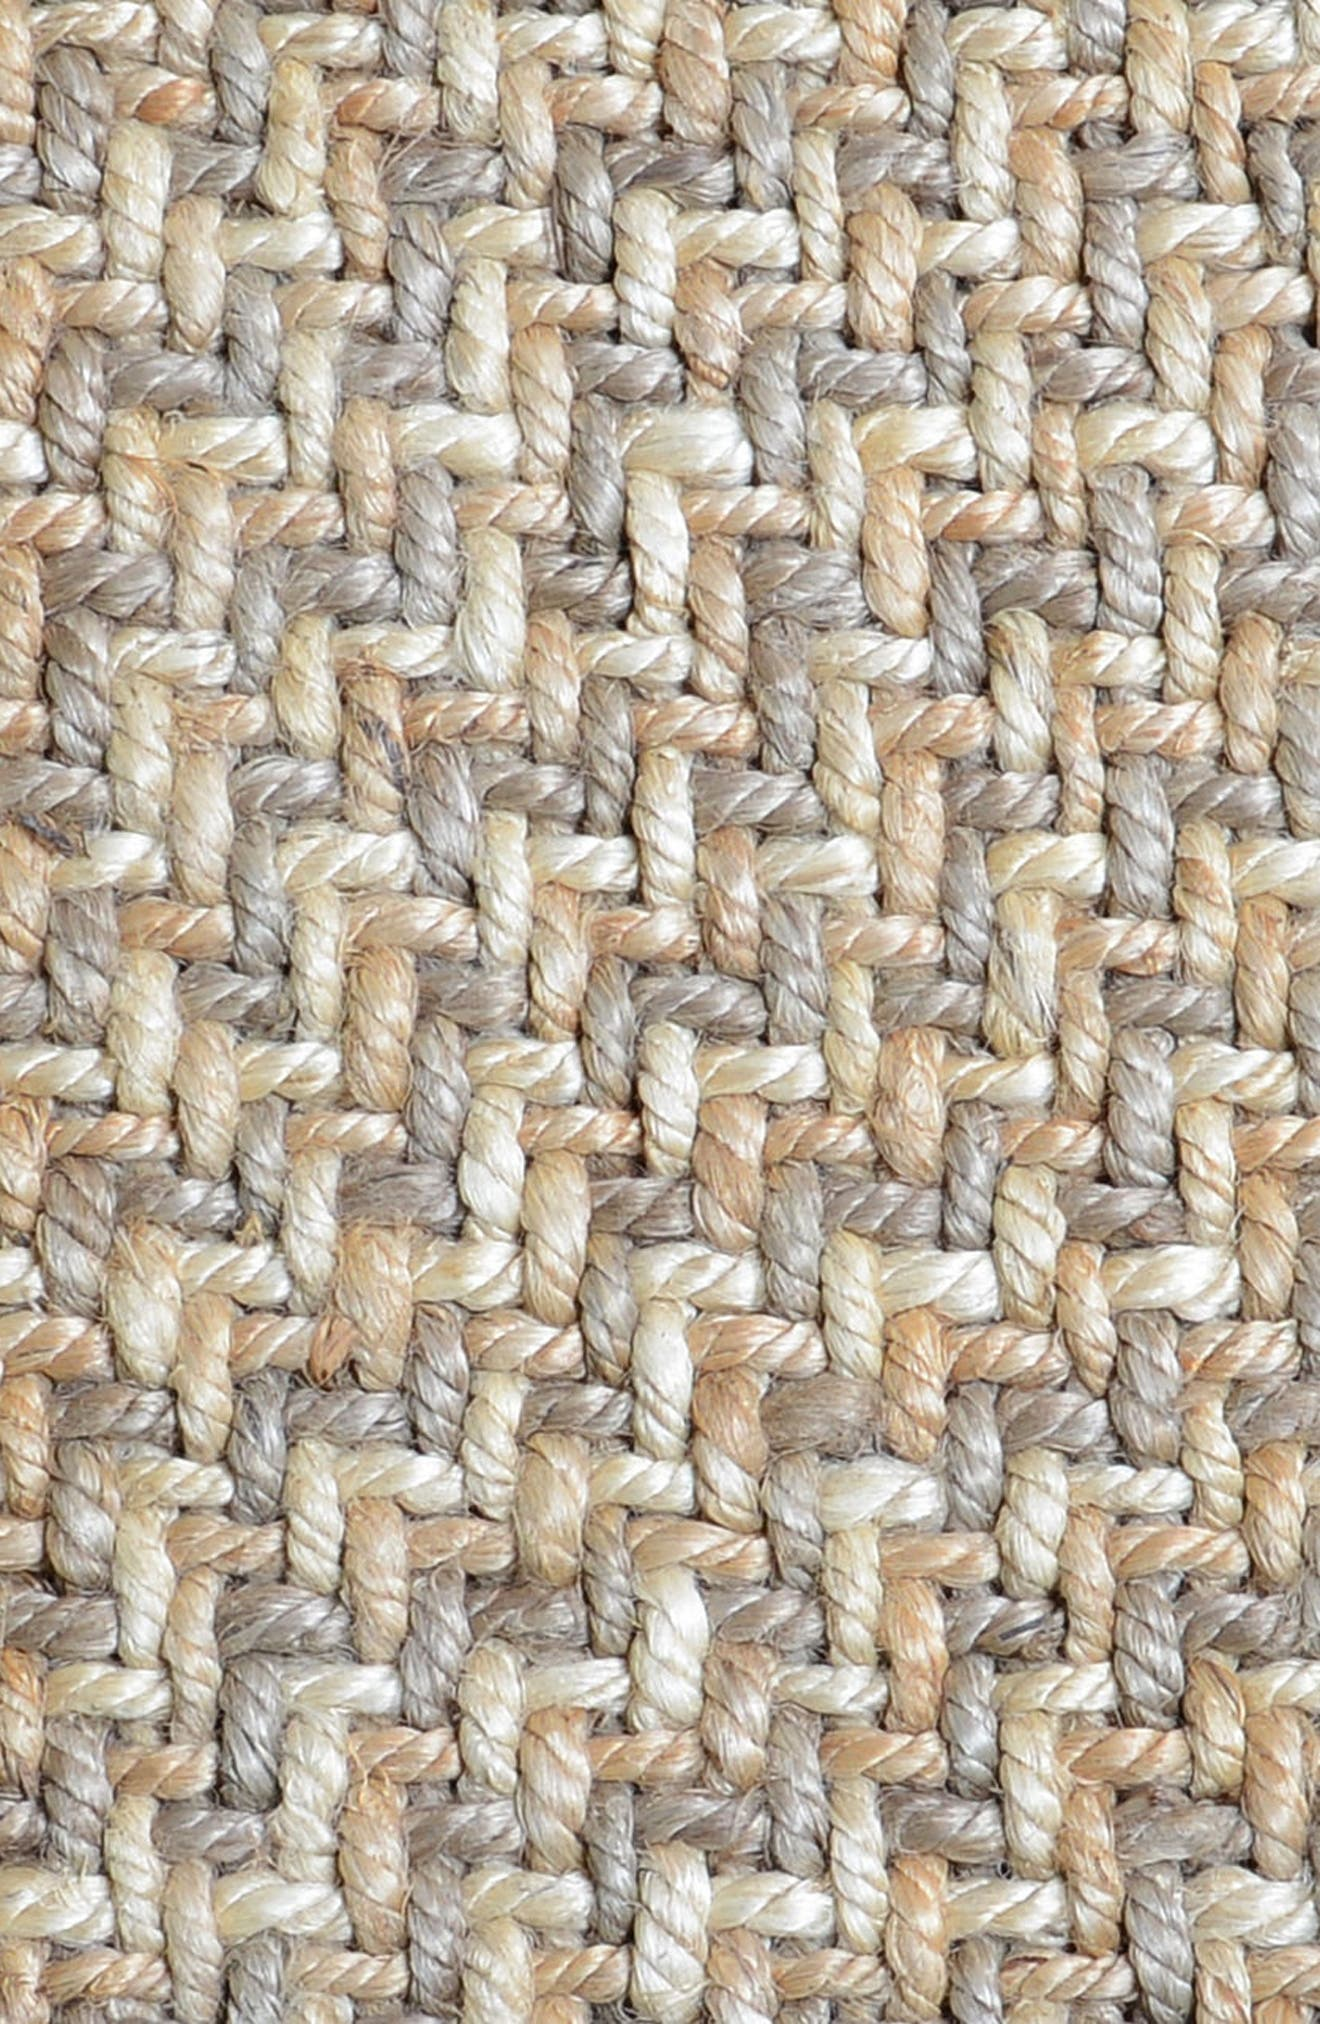 Ladera Handwoven Rug,                             Alternate thumbnail 3, color,                             Natural/ Bleach